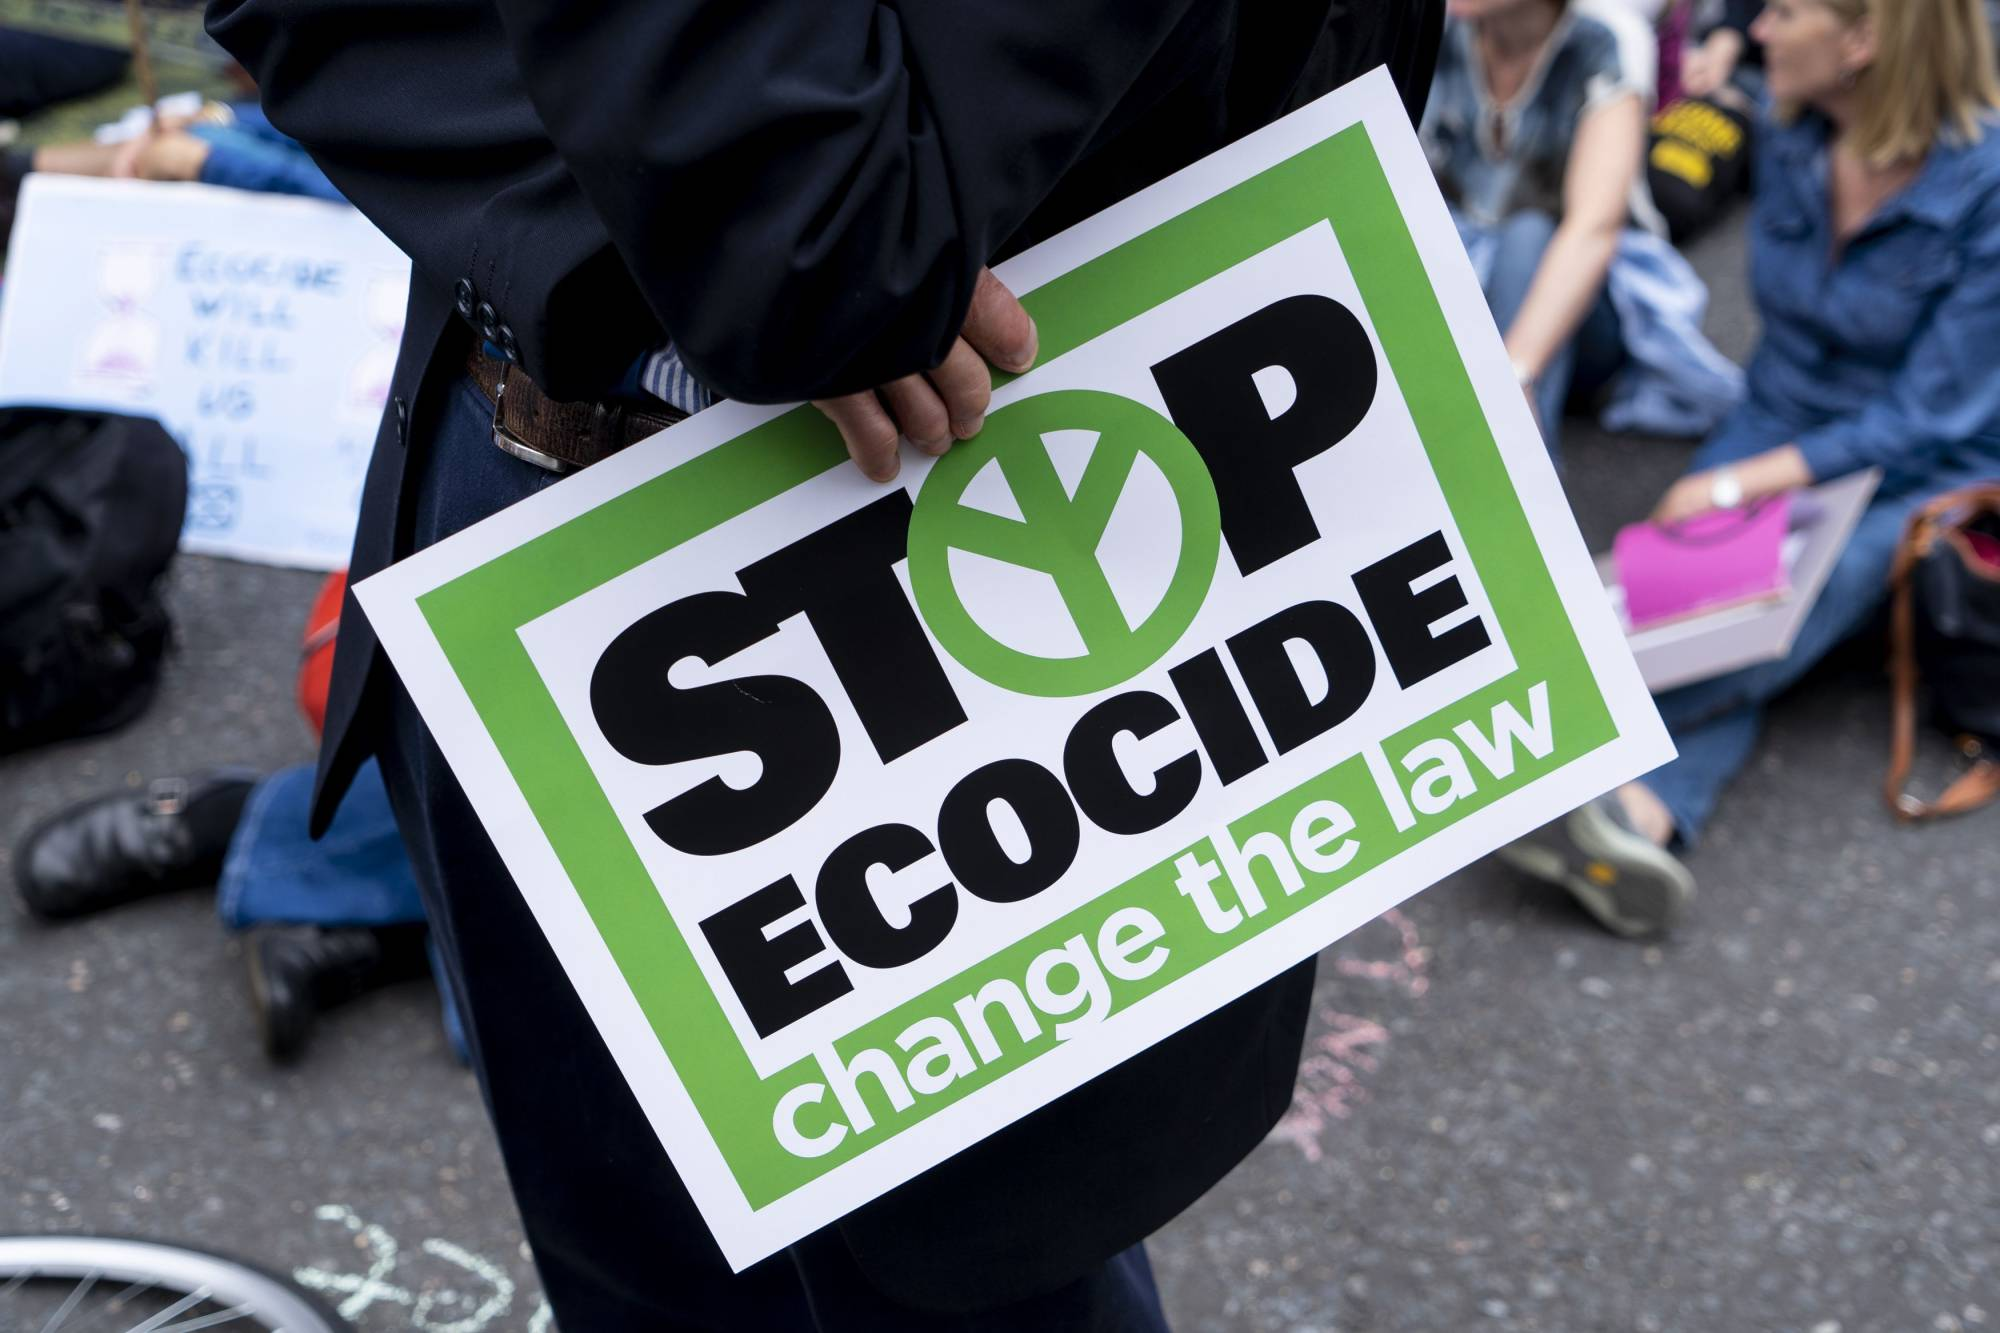 An Extinction Rebellion demonstrator protests outside of The Royal Courts of Justice in London in July 2019. | AFP-JIJI